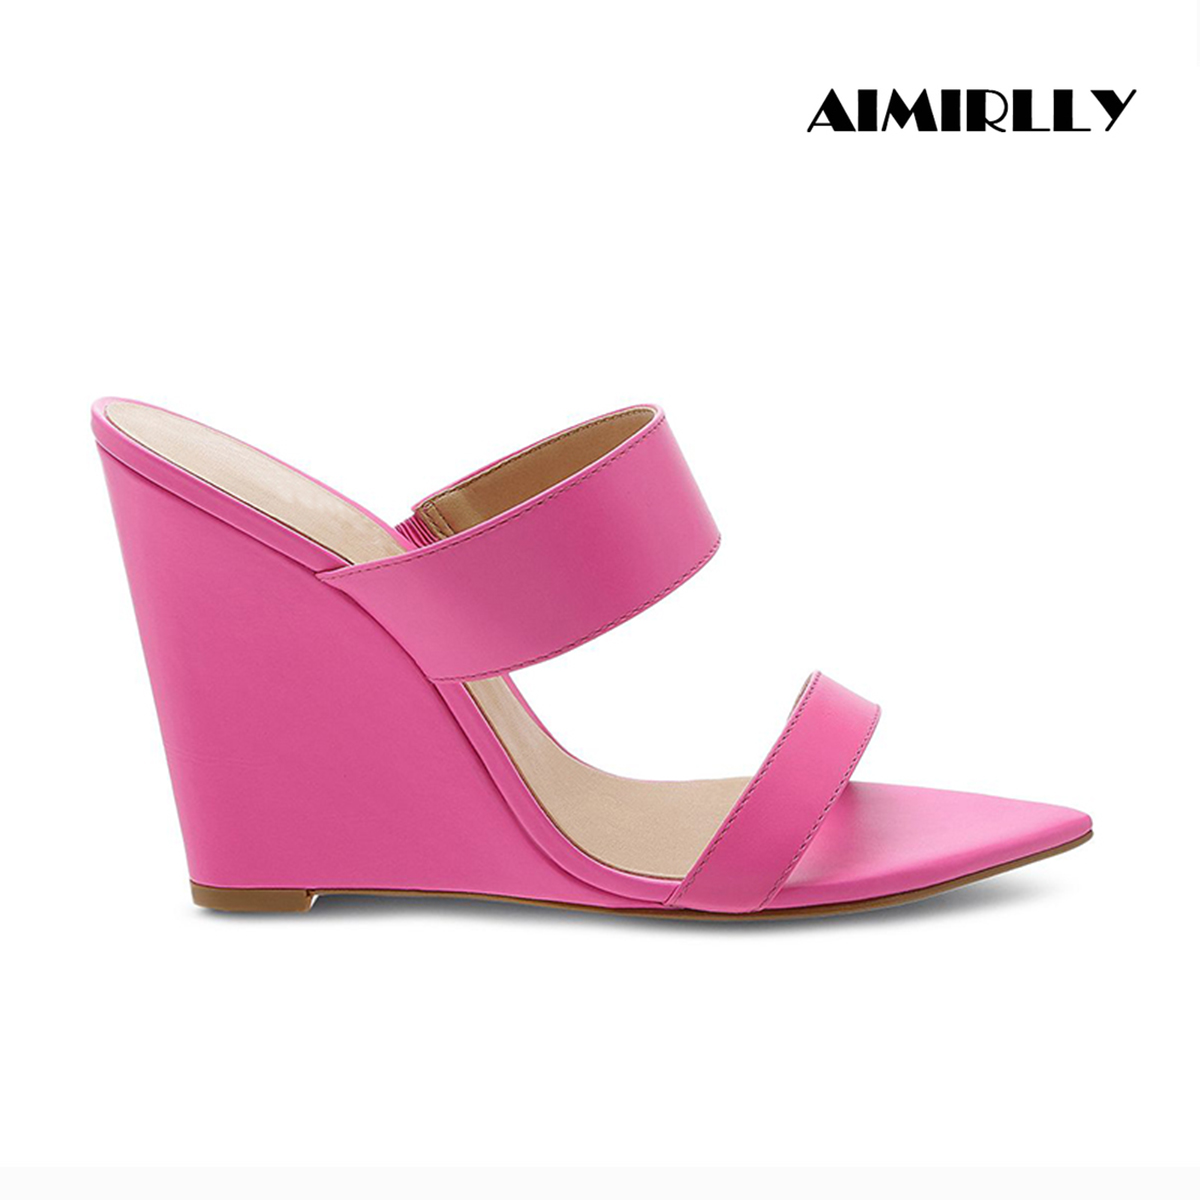 Aimirlly Wedges Heels Pointed-Toe Slippers Sandals Women Shoes Comfortable Summer Ladies